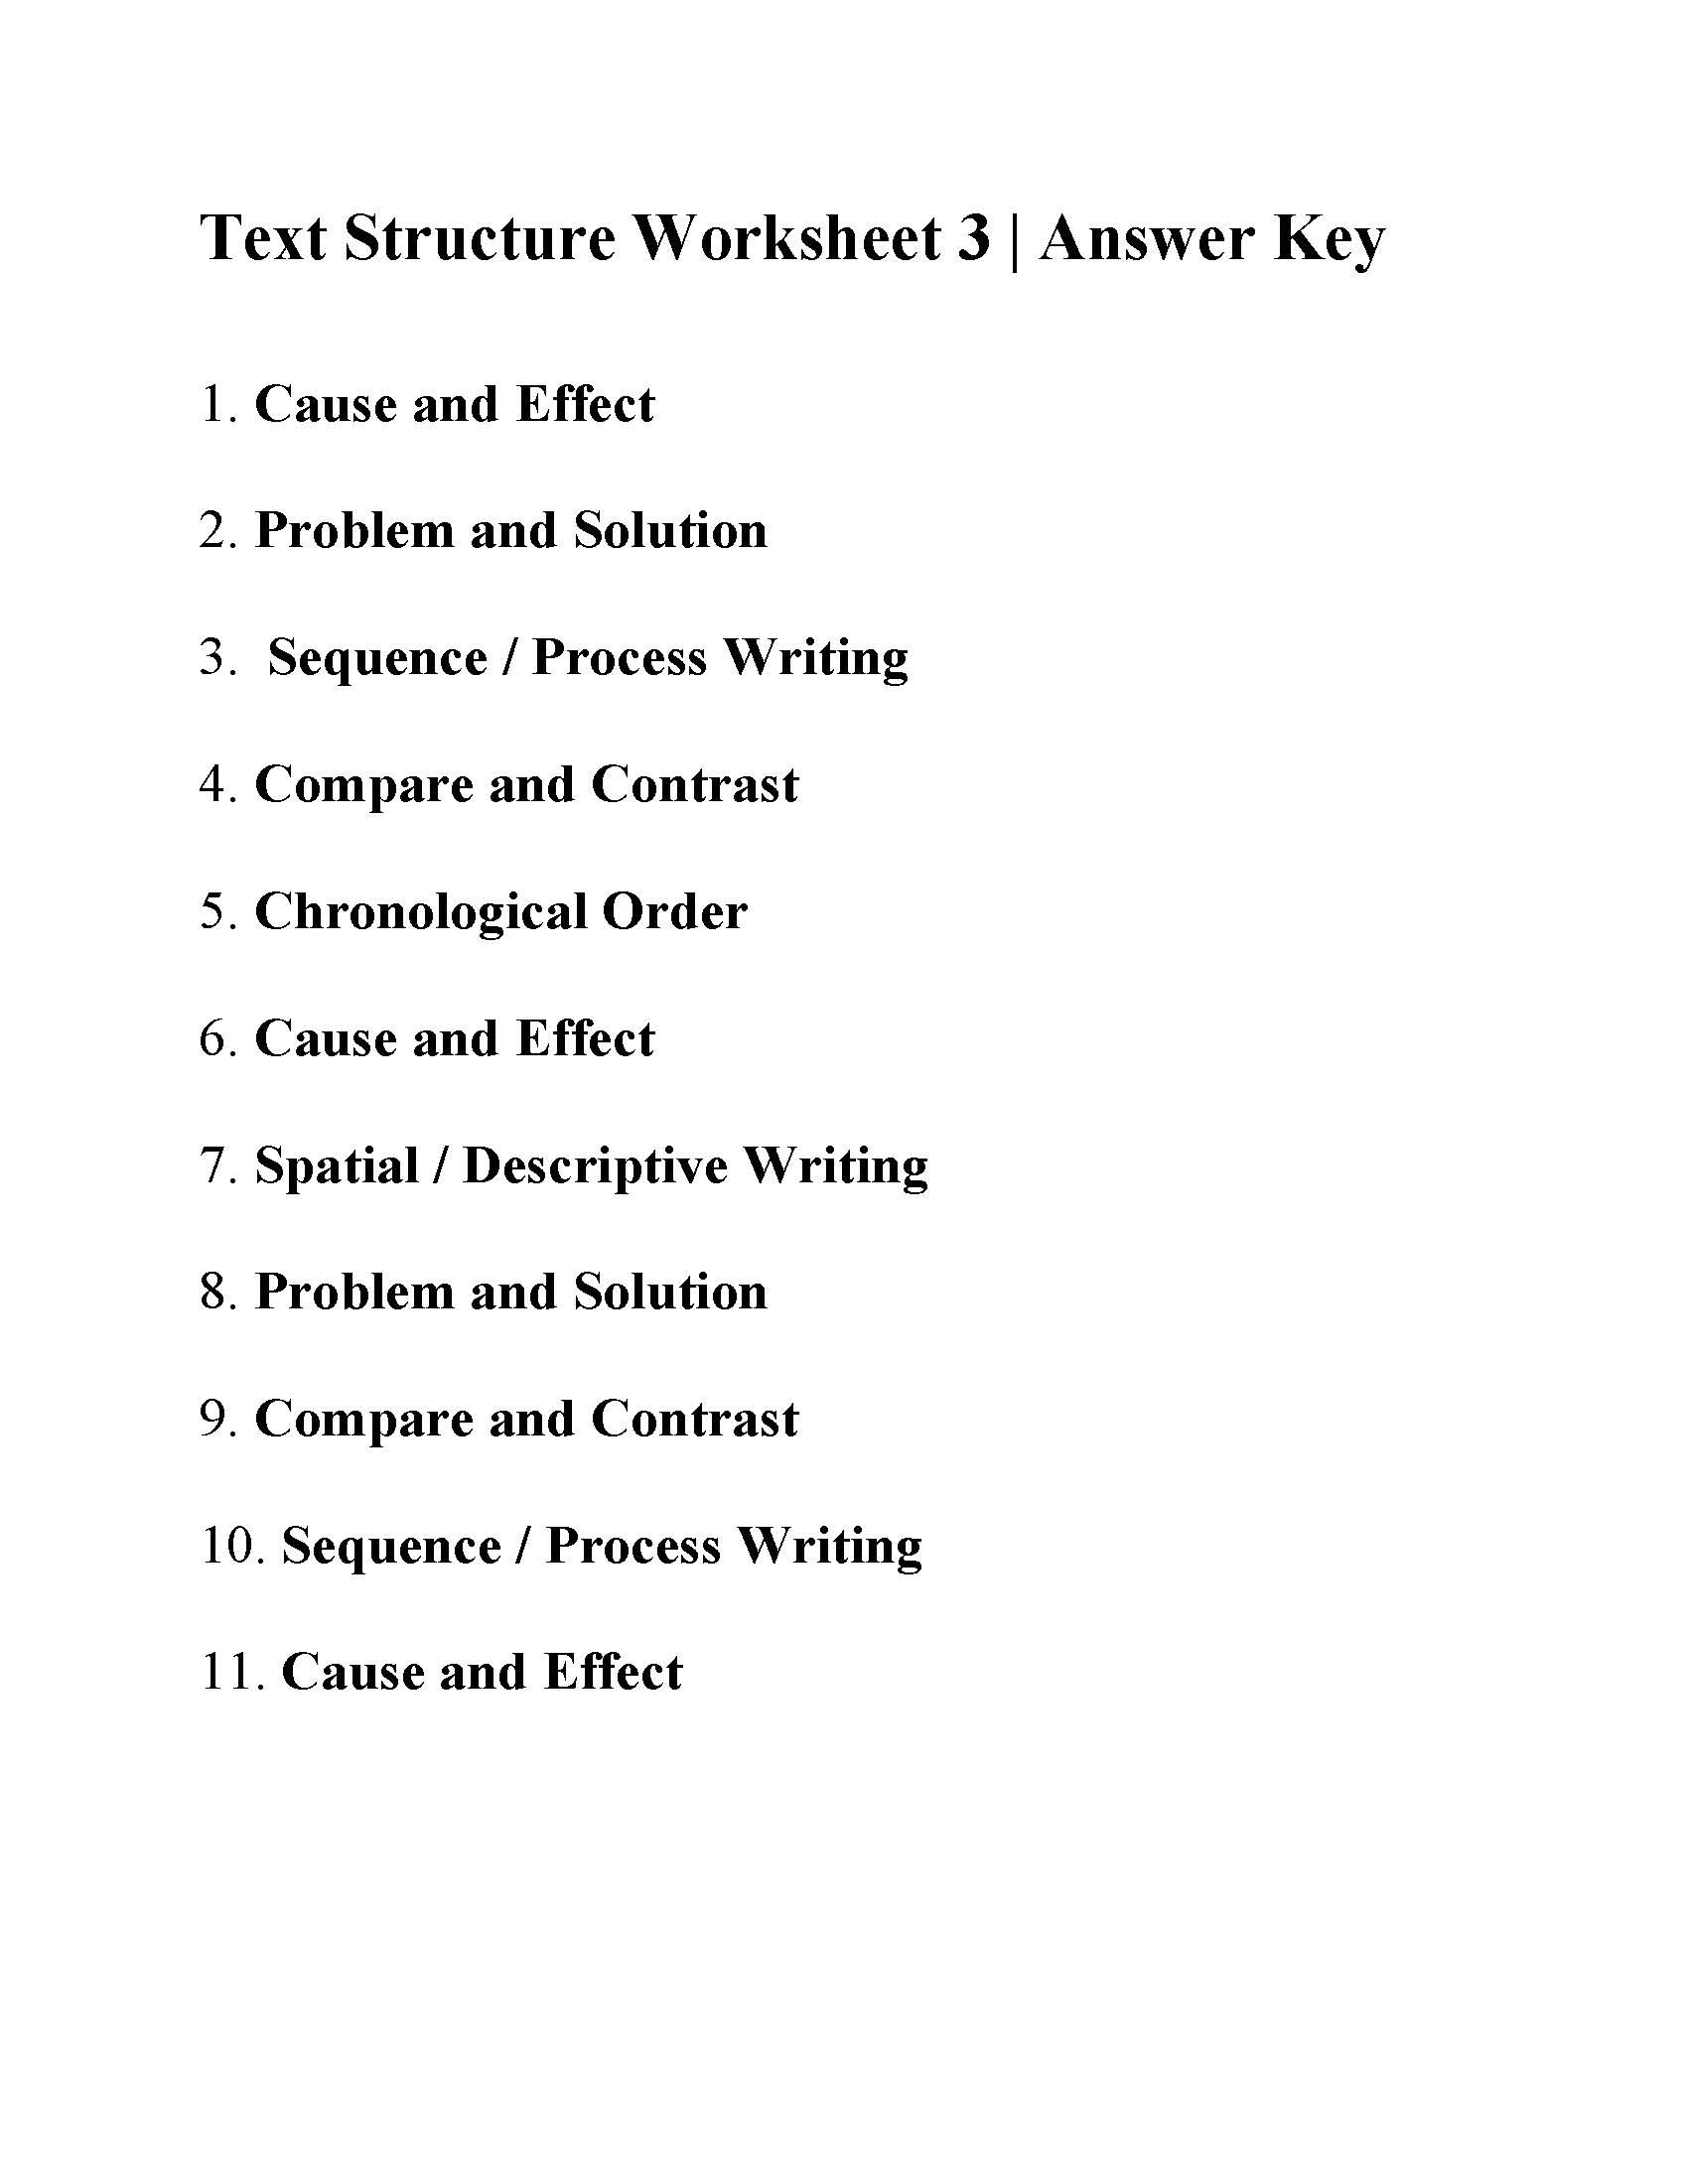 Text Structure Worksheets 3rd Grade Text Structure Worksheet 3